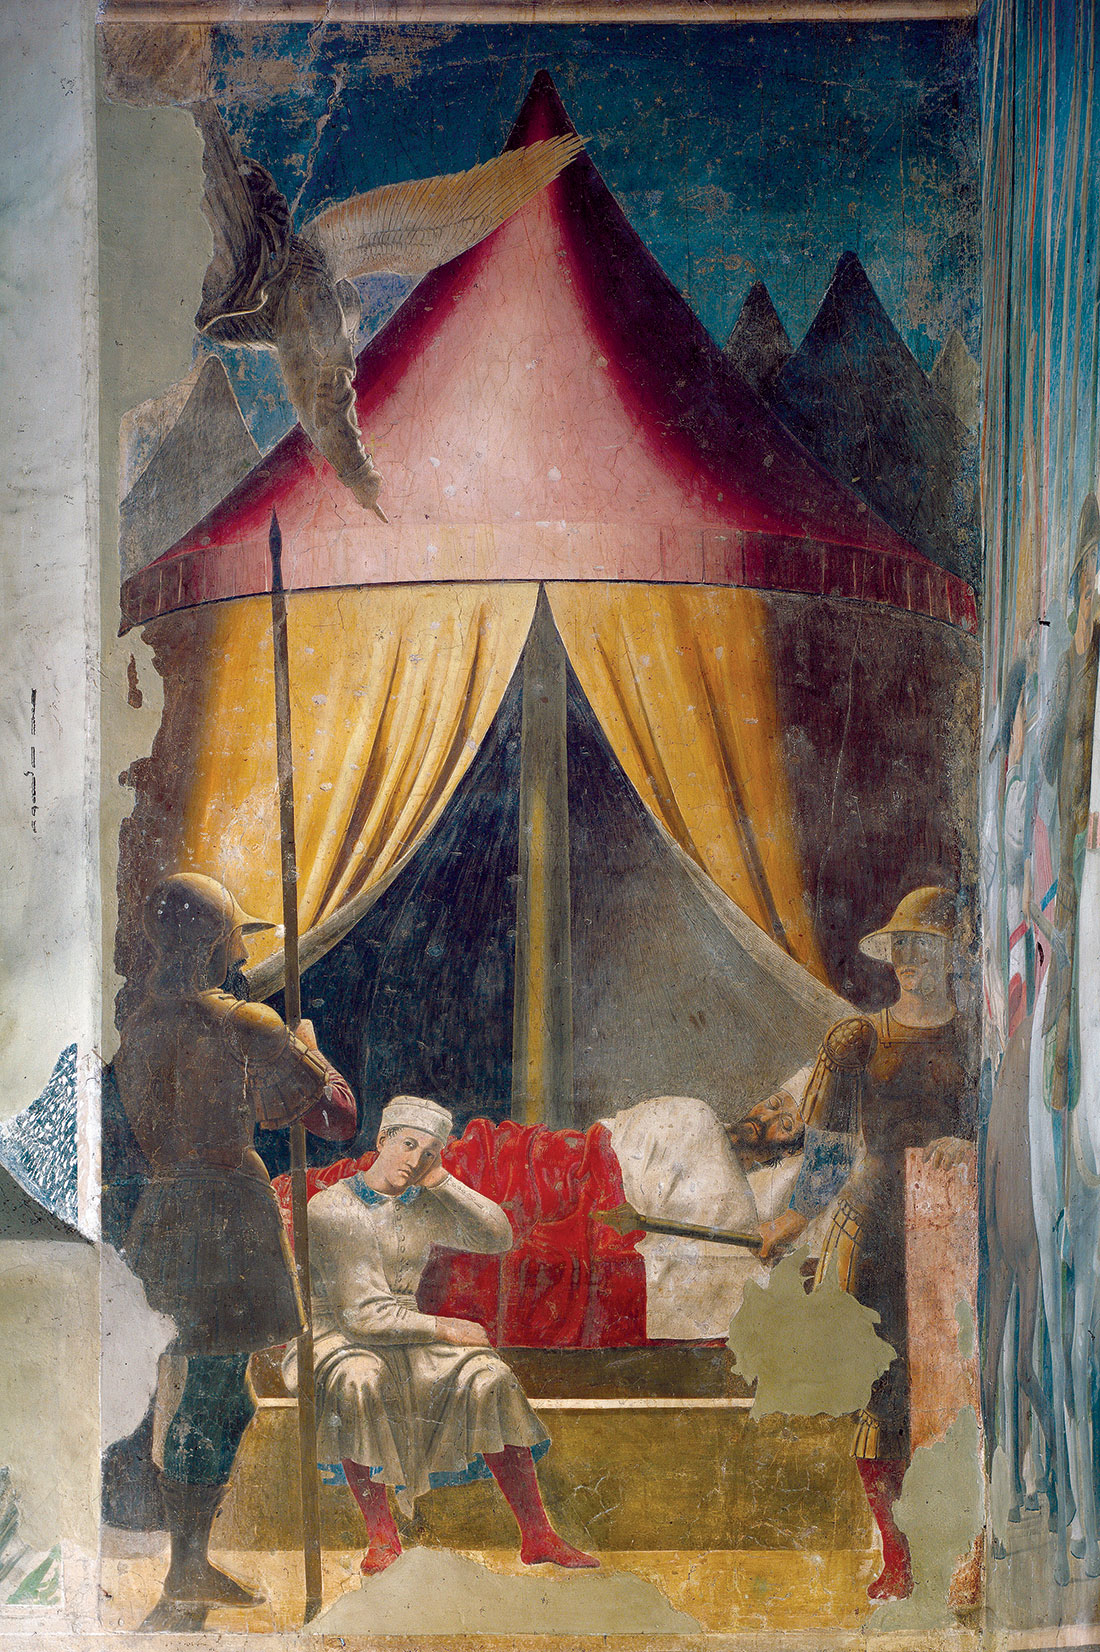 'Constantine's Dream' by Piero della Francesca, from the fresco cycle, the History of the True  Cross, 1459-66, Basilica di San Francesco, Arezzo, Italy.